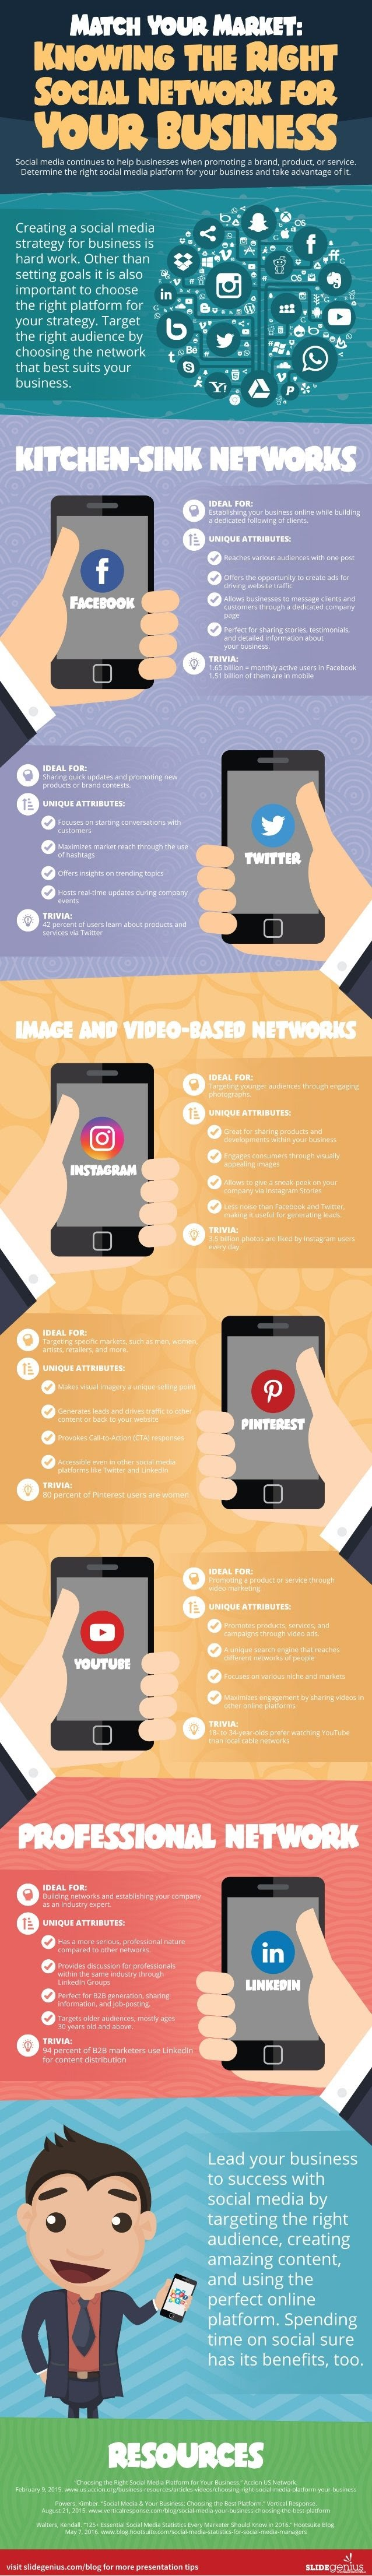 Which Social Media Platforms Are Worth Your Time and Effort? - #Infographic